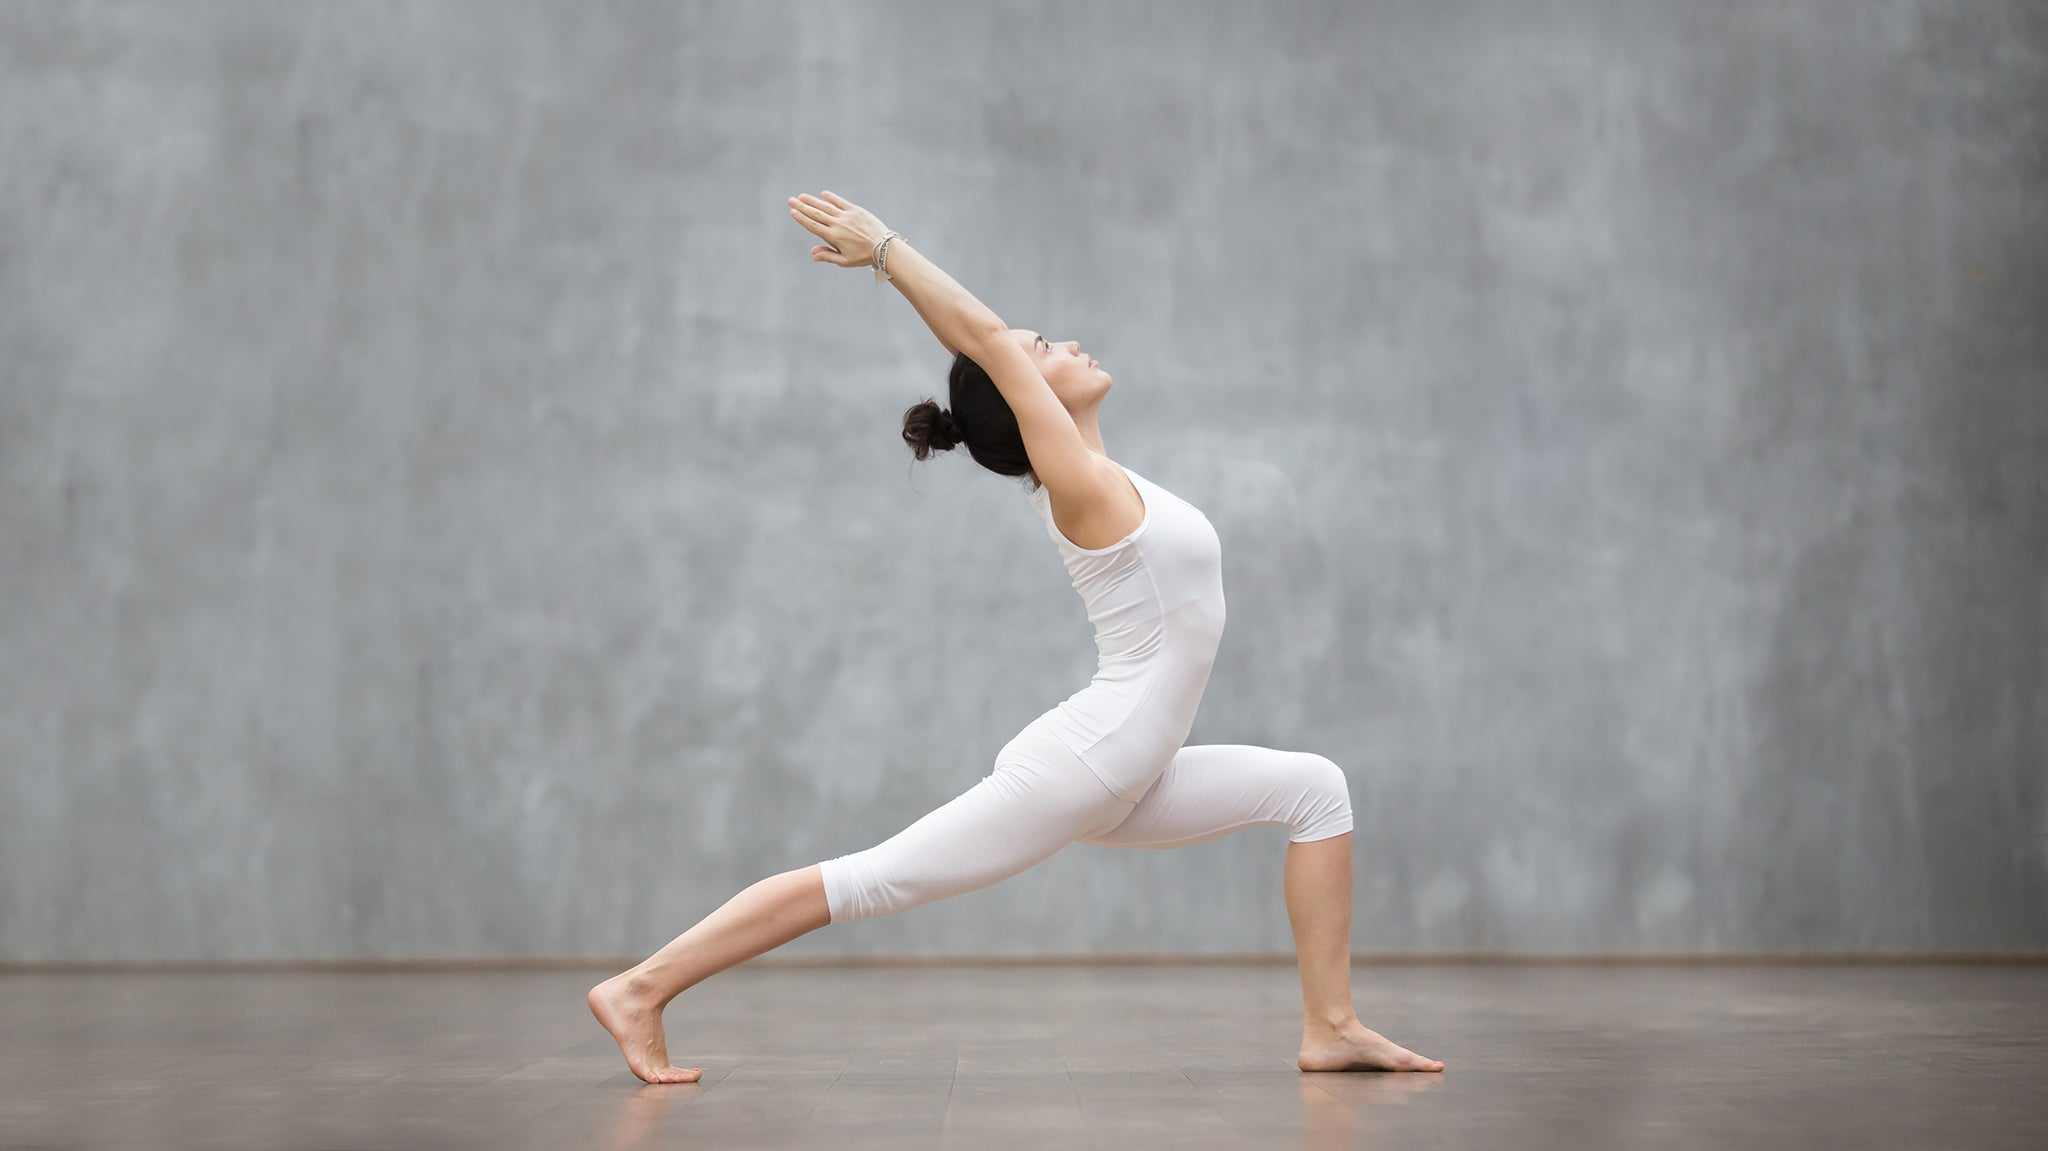 8 Yoga Poses to Help Ease Chronic Pain